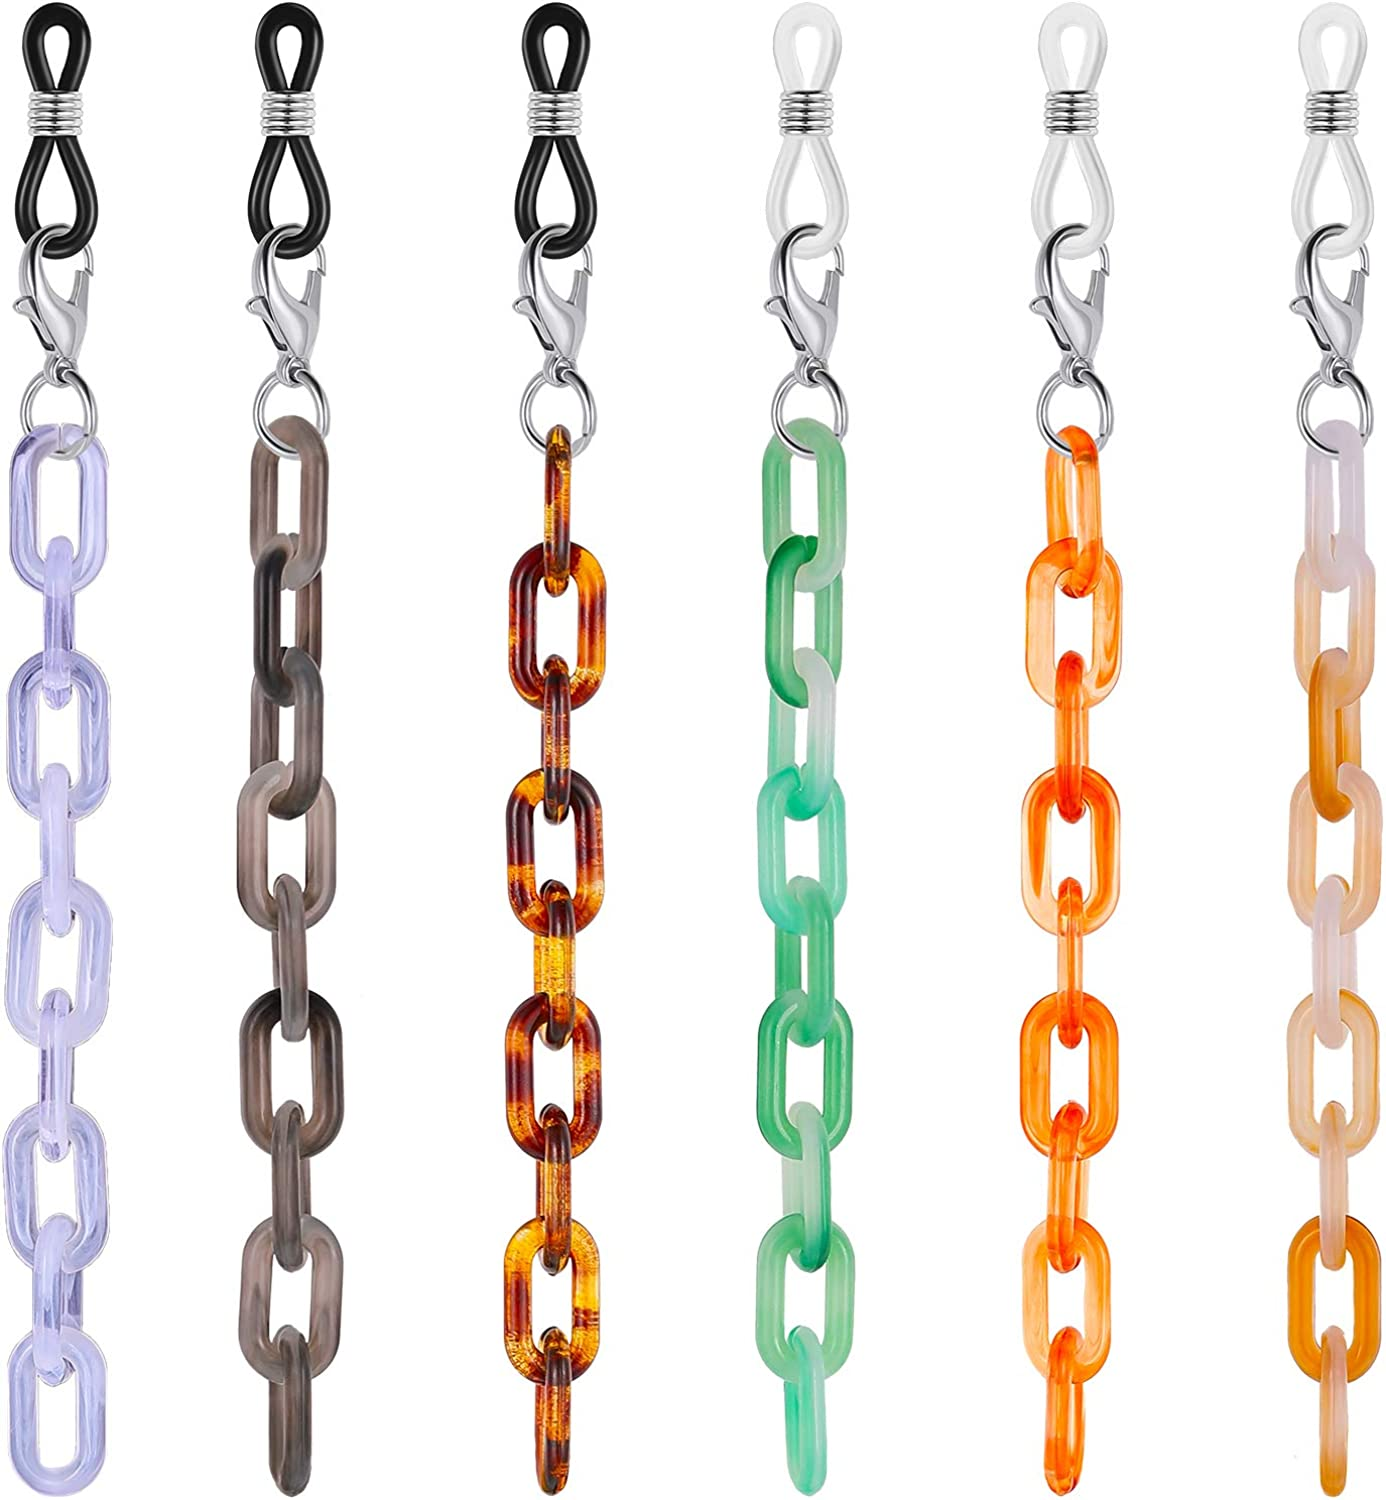 6 Eyeglass Chain Strap Holder Sunglass Chain, Acrylic Face Covering Holder Chain Necklace Lanyard